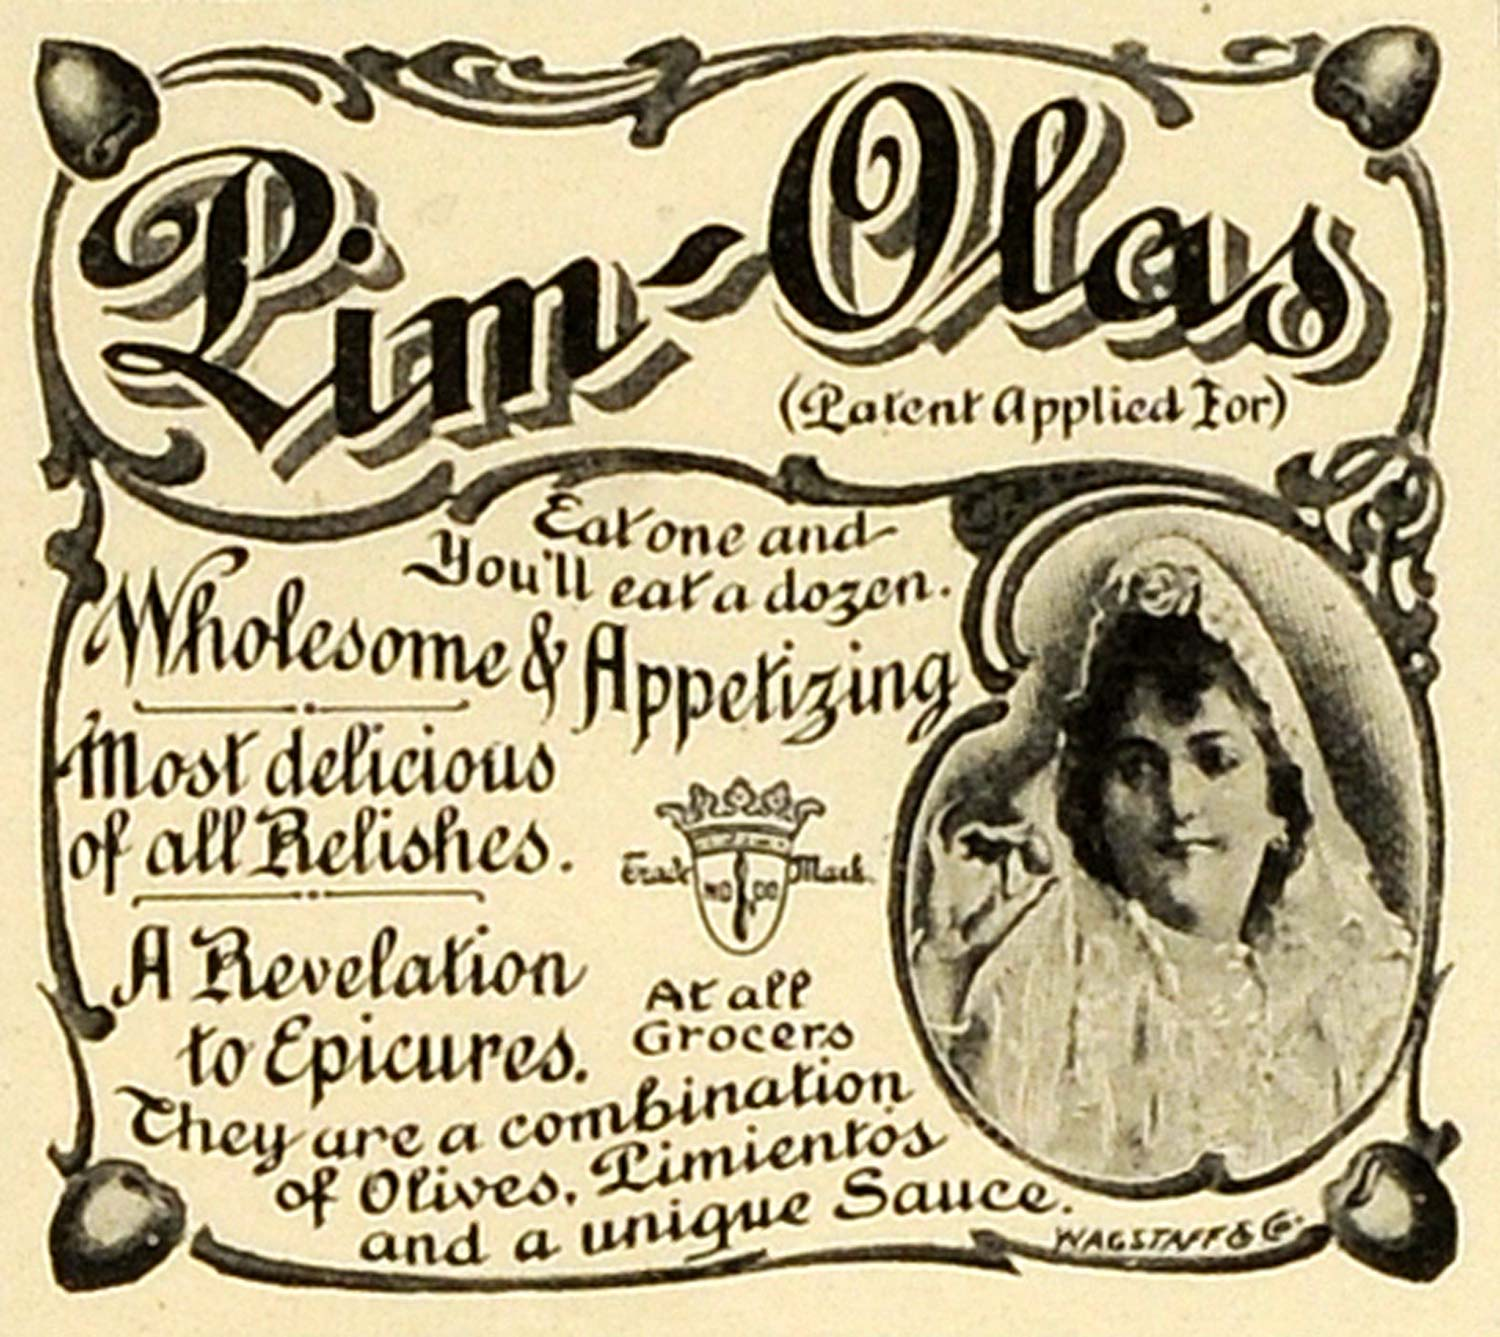 1898 Ad Pim-Olas Sauce Queen Olive Pimientos Appetizer Food Products Relish MX7